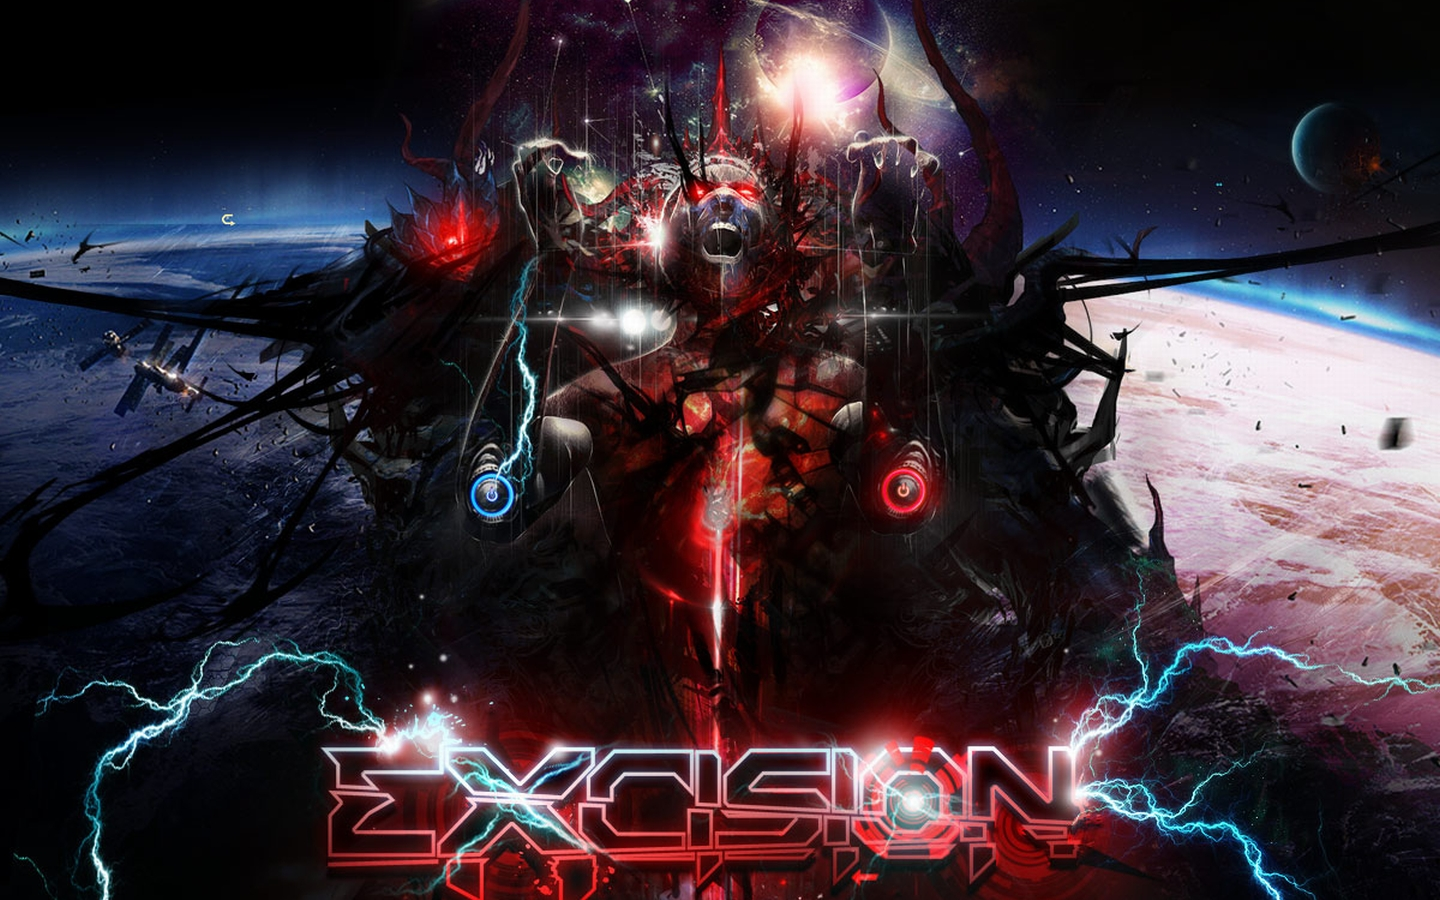 Excision dubstep